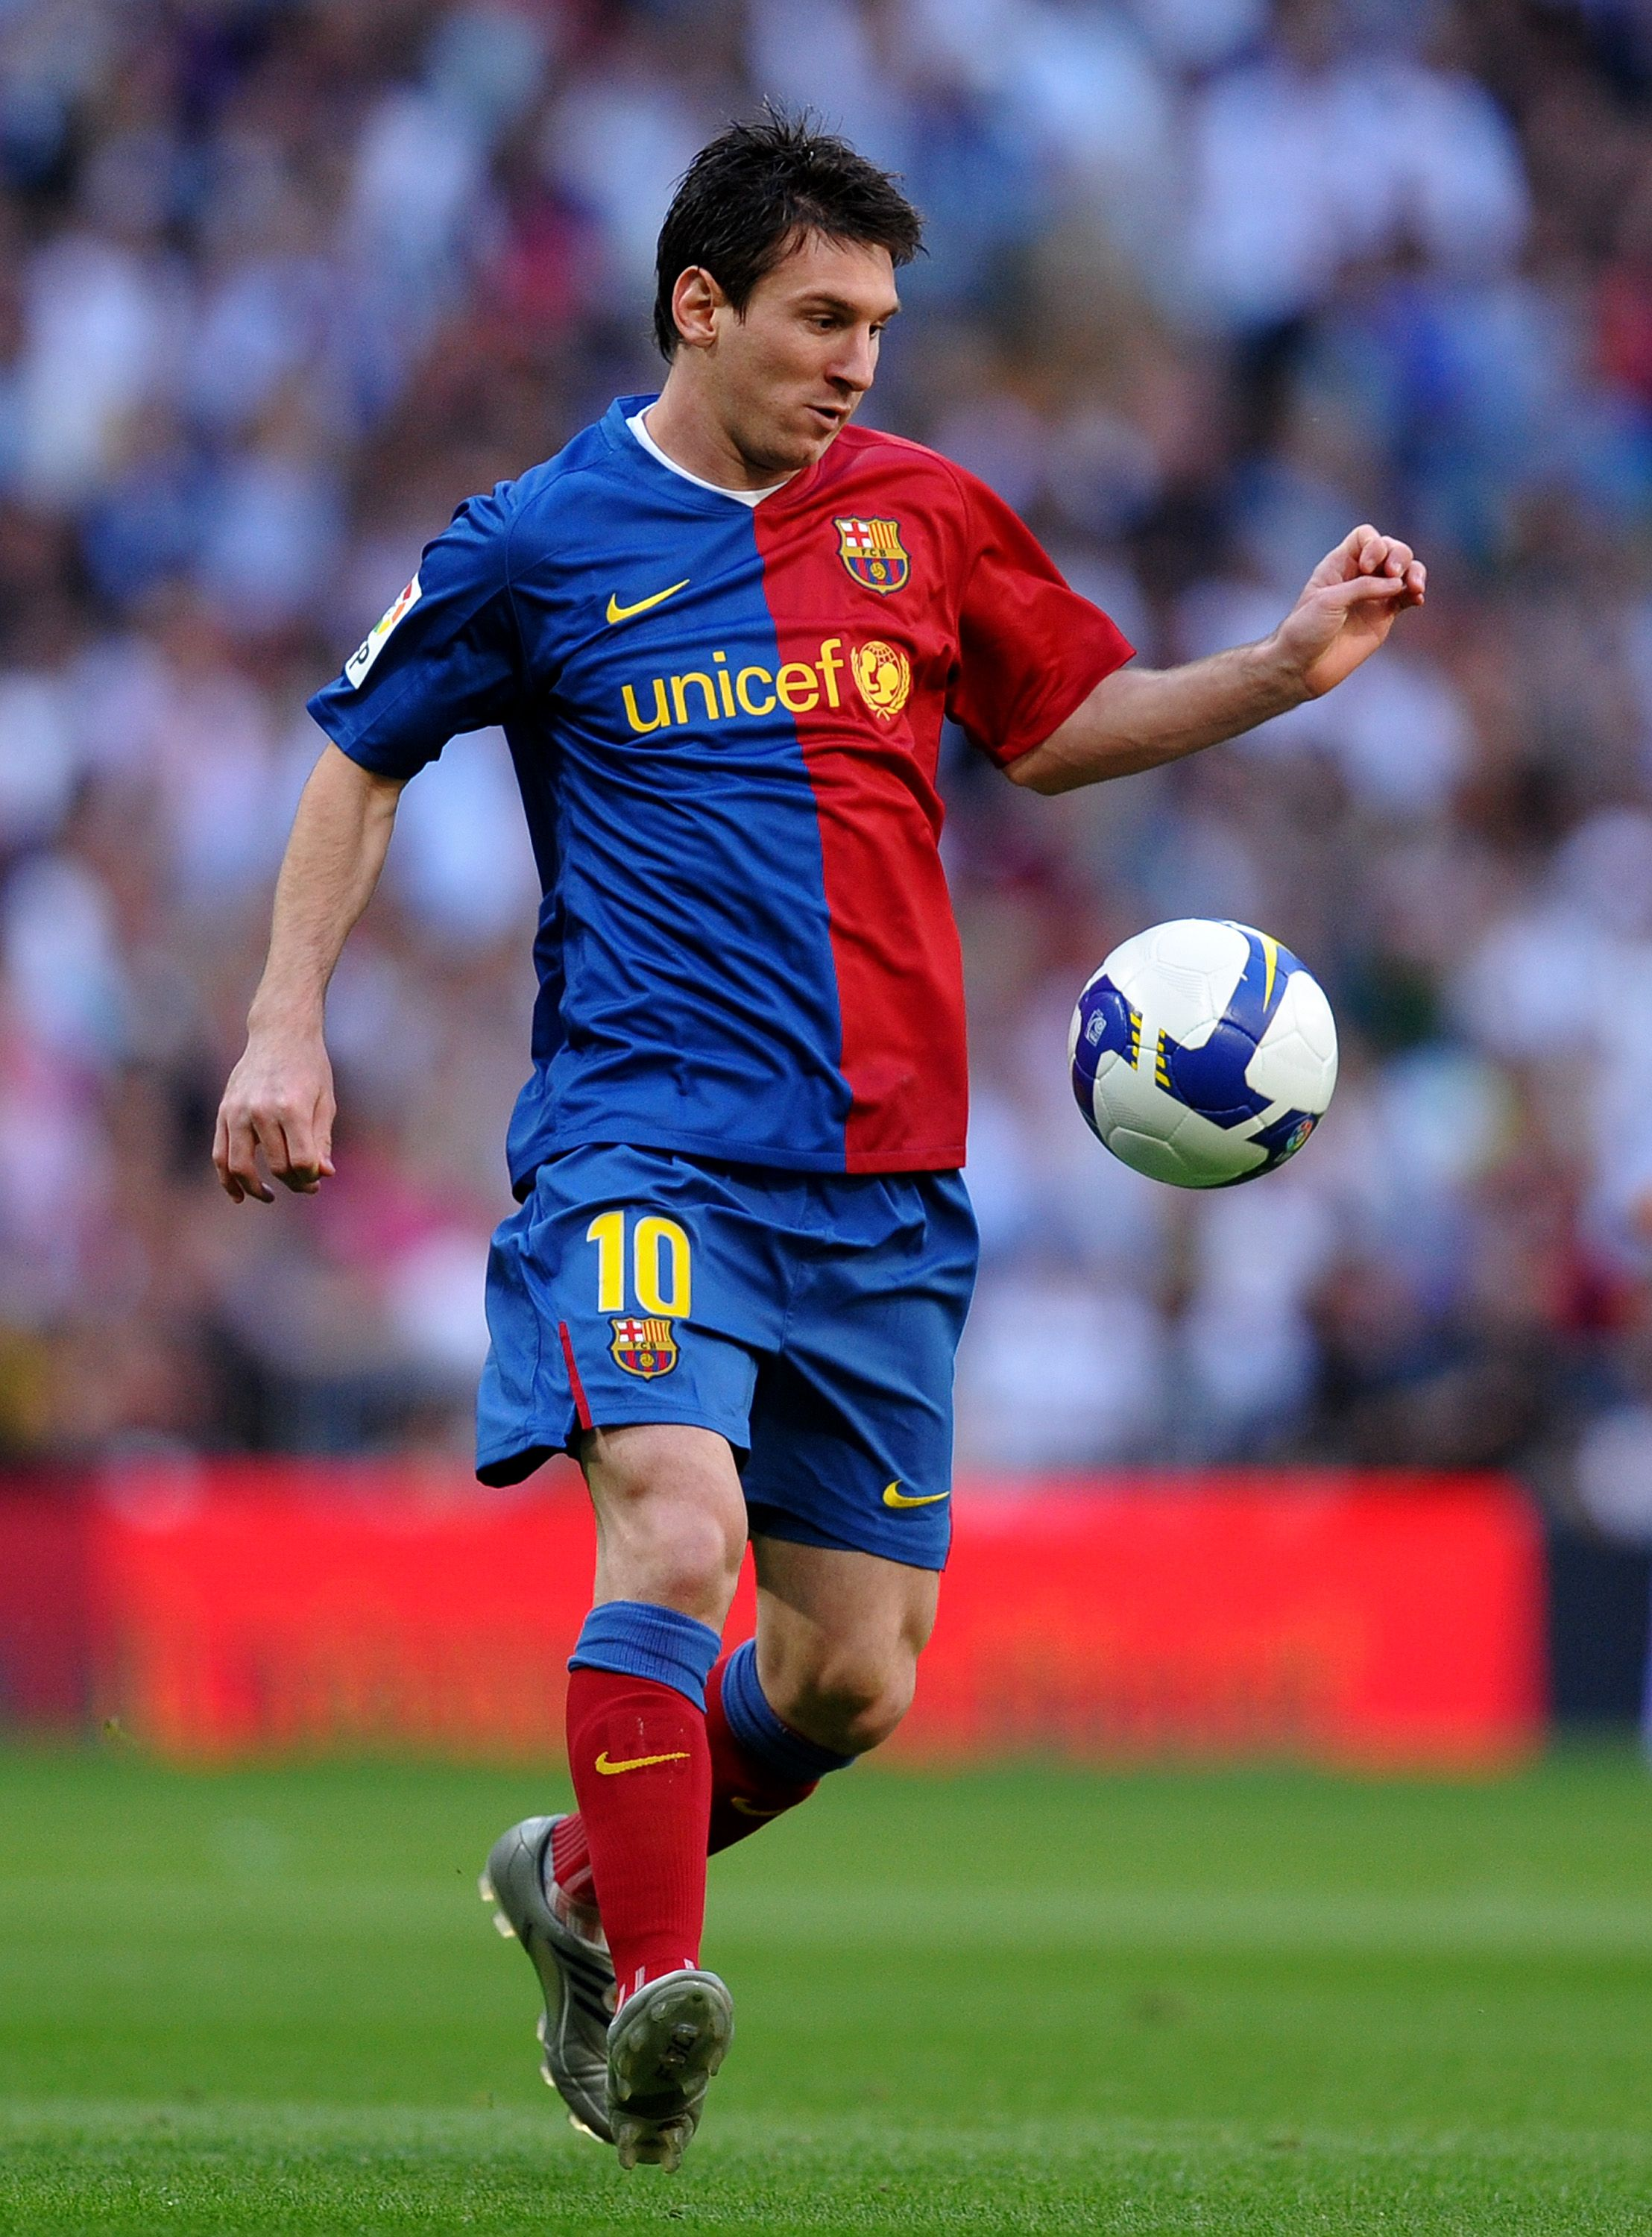 Lionel Messi | center-forward | Argentina - Play like Messi!